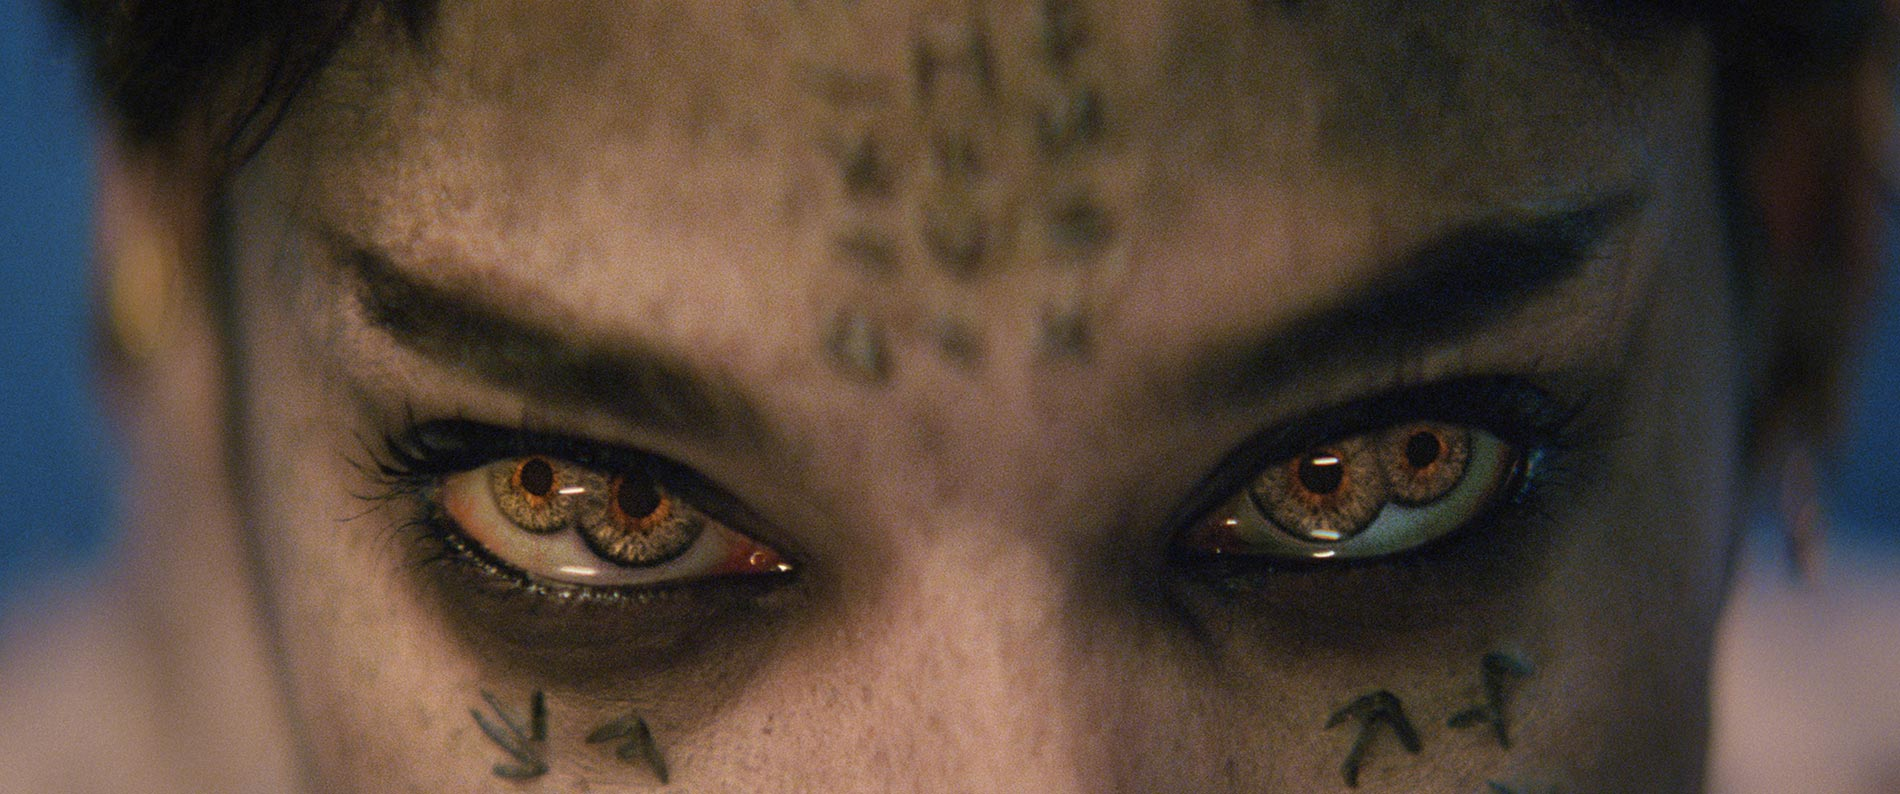 'The Mummy' Film Review: Whatever the Film Lacks, Tom Cruise Compensates